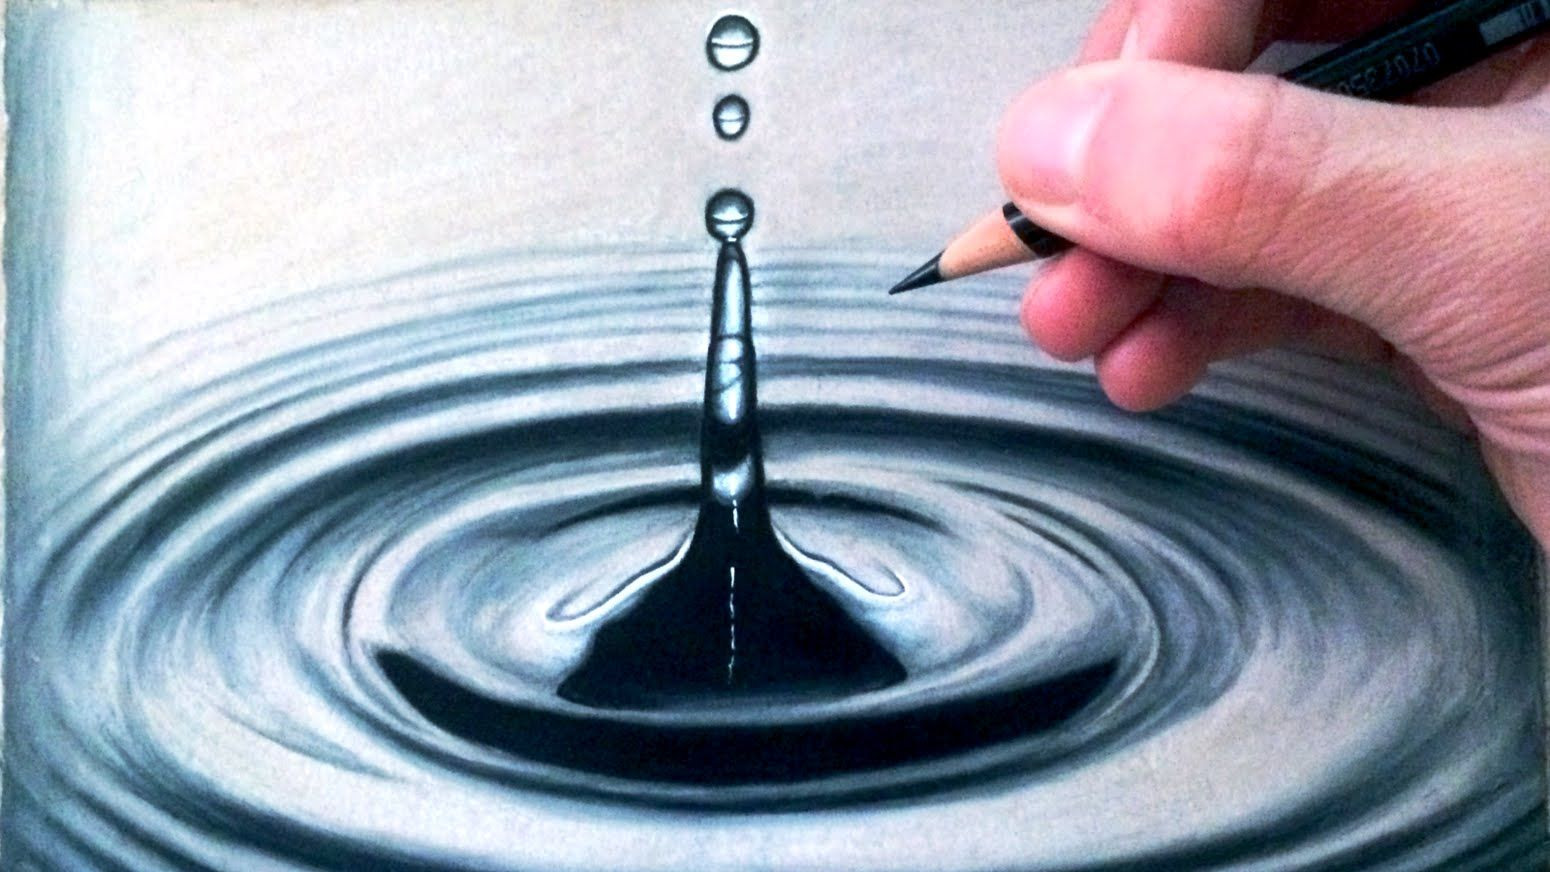 How to draw a water drop splash